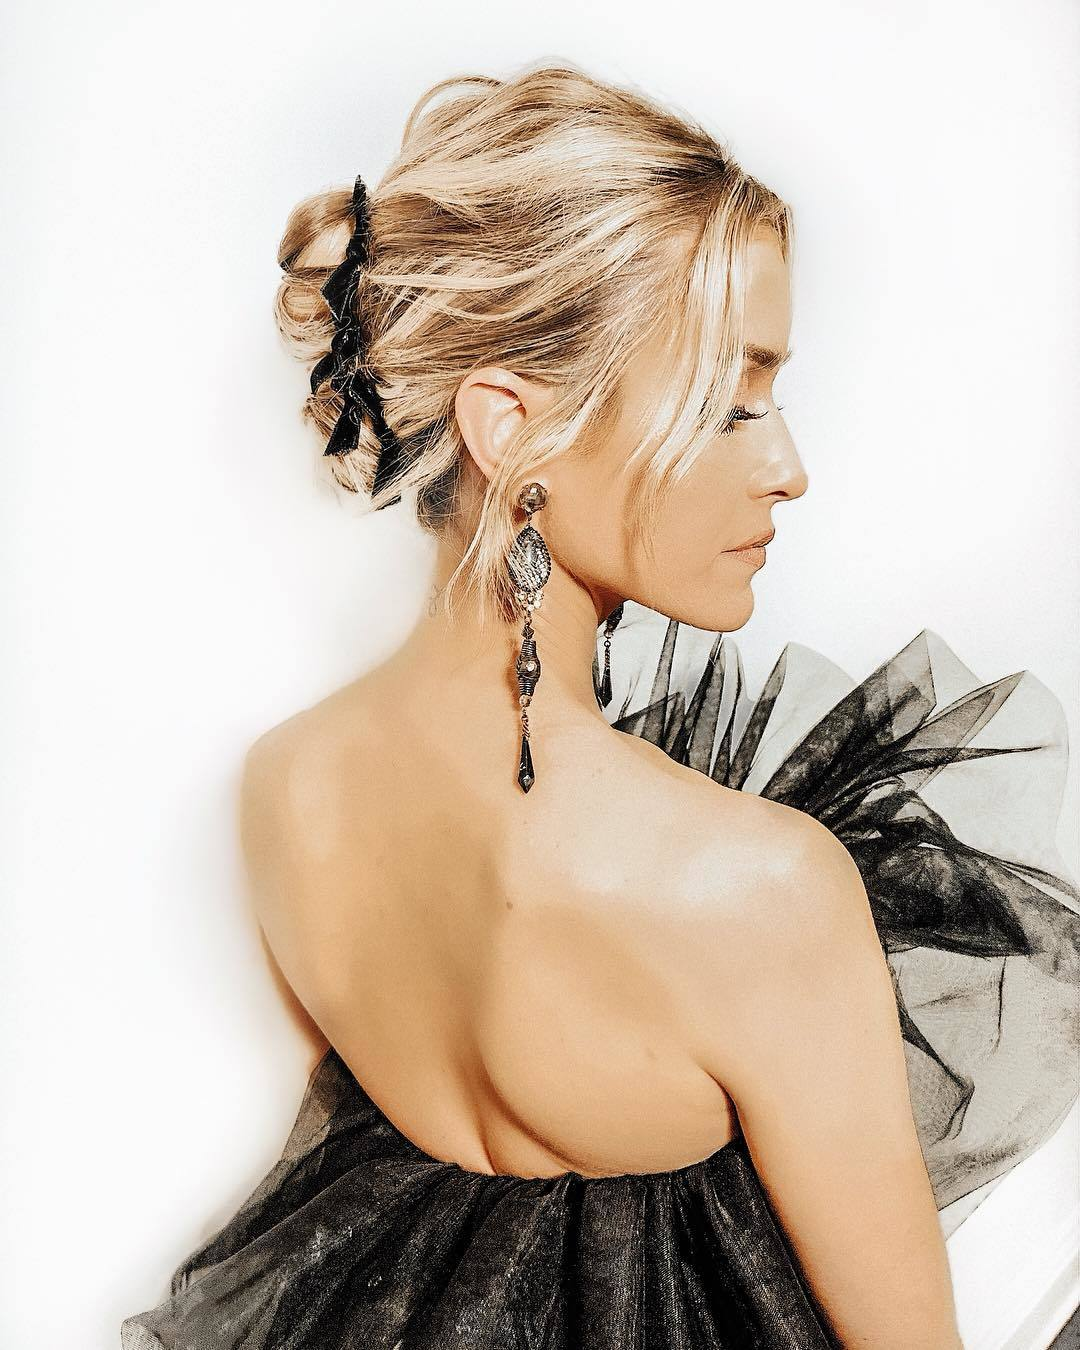 Wedding hairstyles: Side shot of woman with bronde blonde hair styled into a French twist updo with velvet bows, wearing statement earrings and black dress